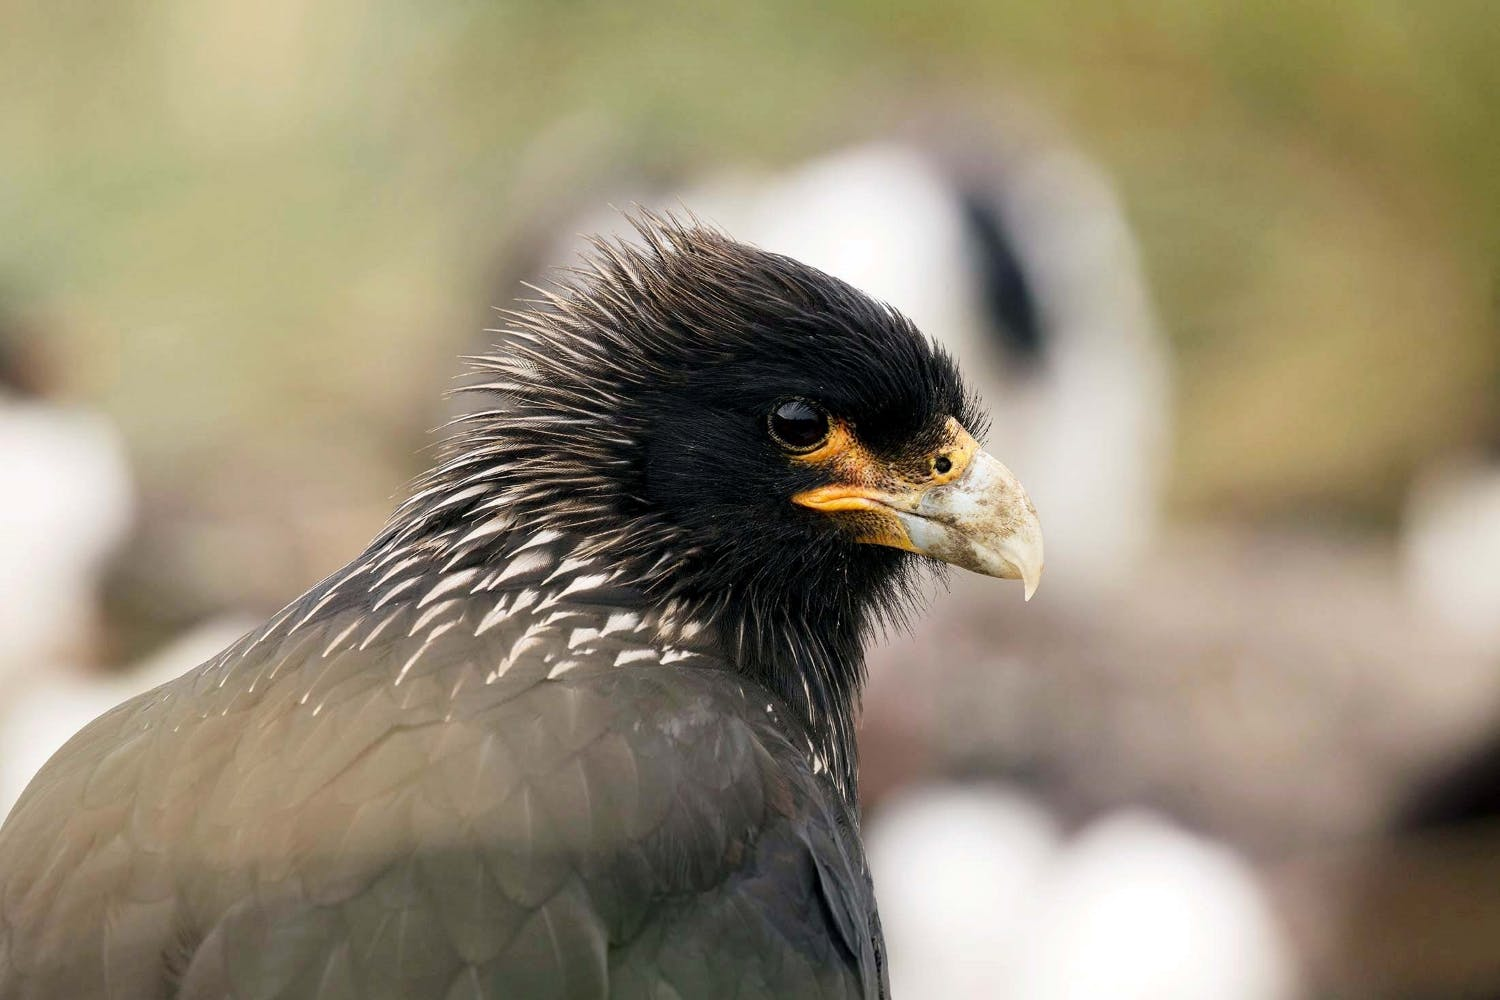 The caracara is a highlight of a Falkland Islands bird watching expedition.